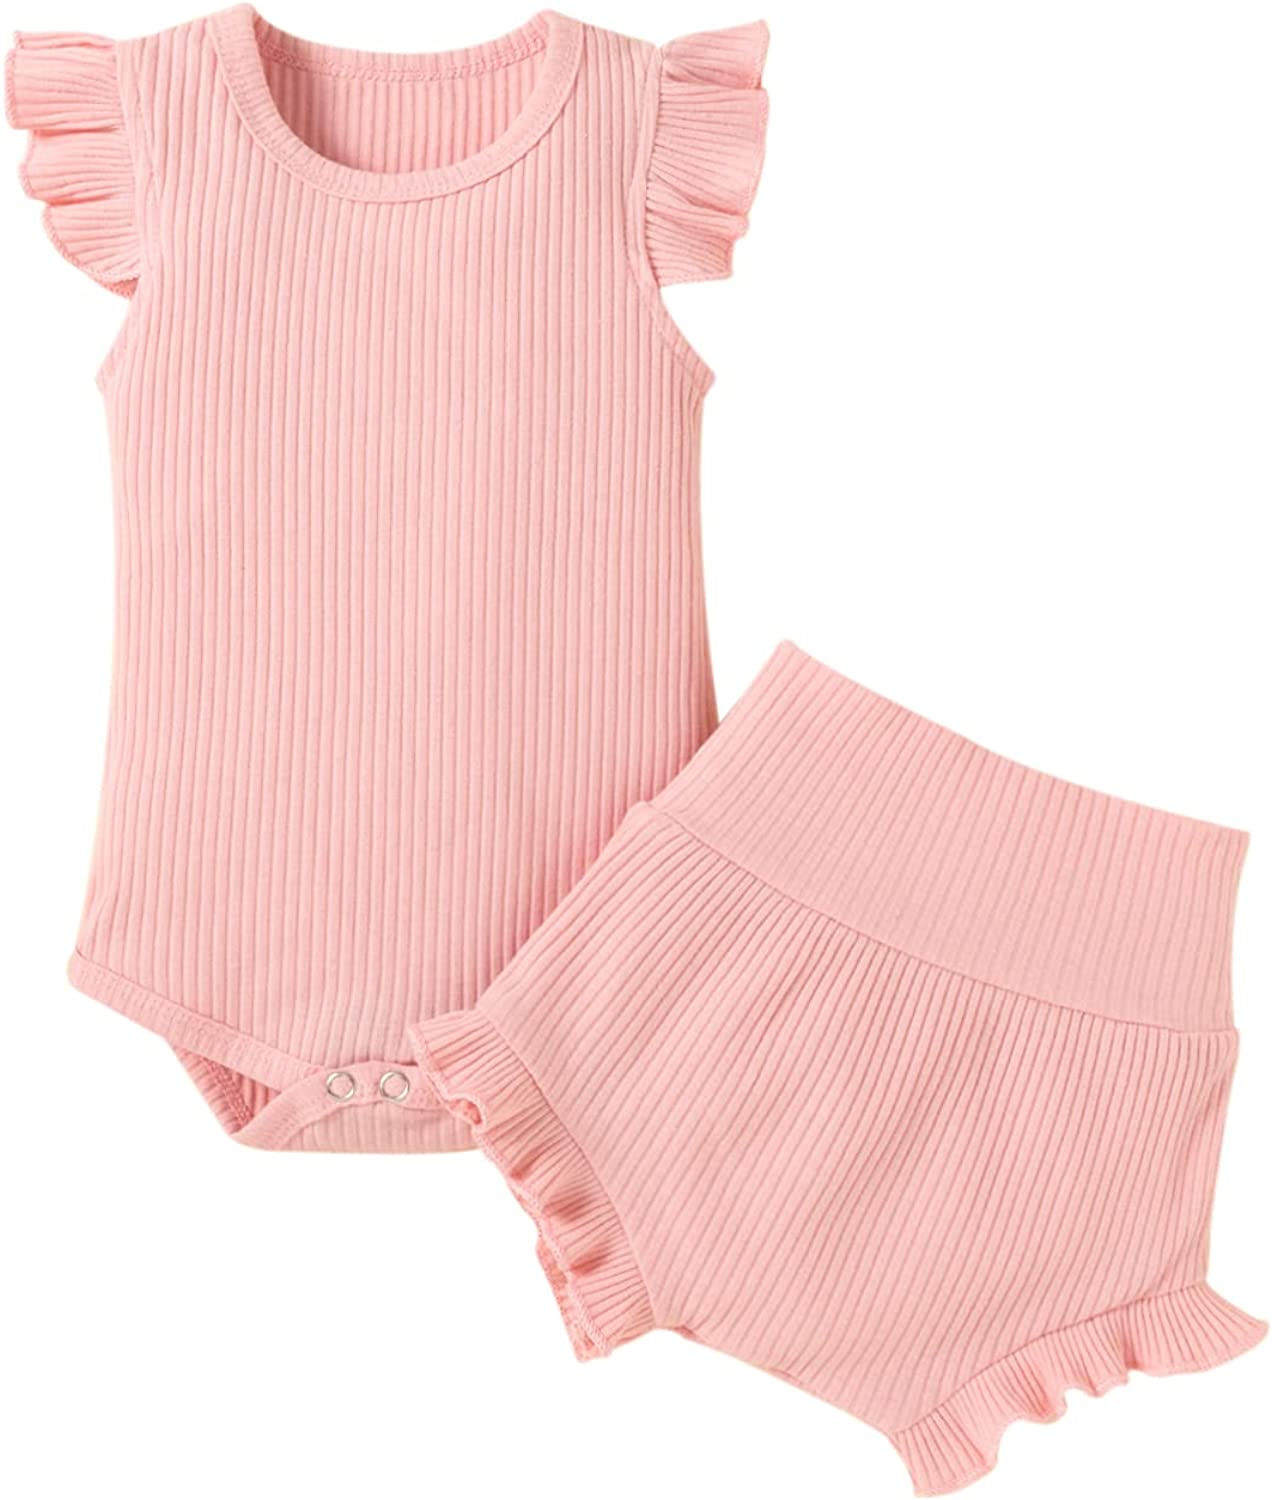 Infant Baby Girl Clothes Newborn Outfits Sets Toddler Ruf Summer Large special price !! Max 75% OFF